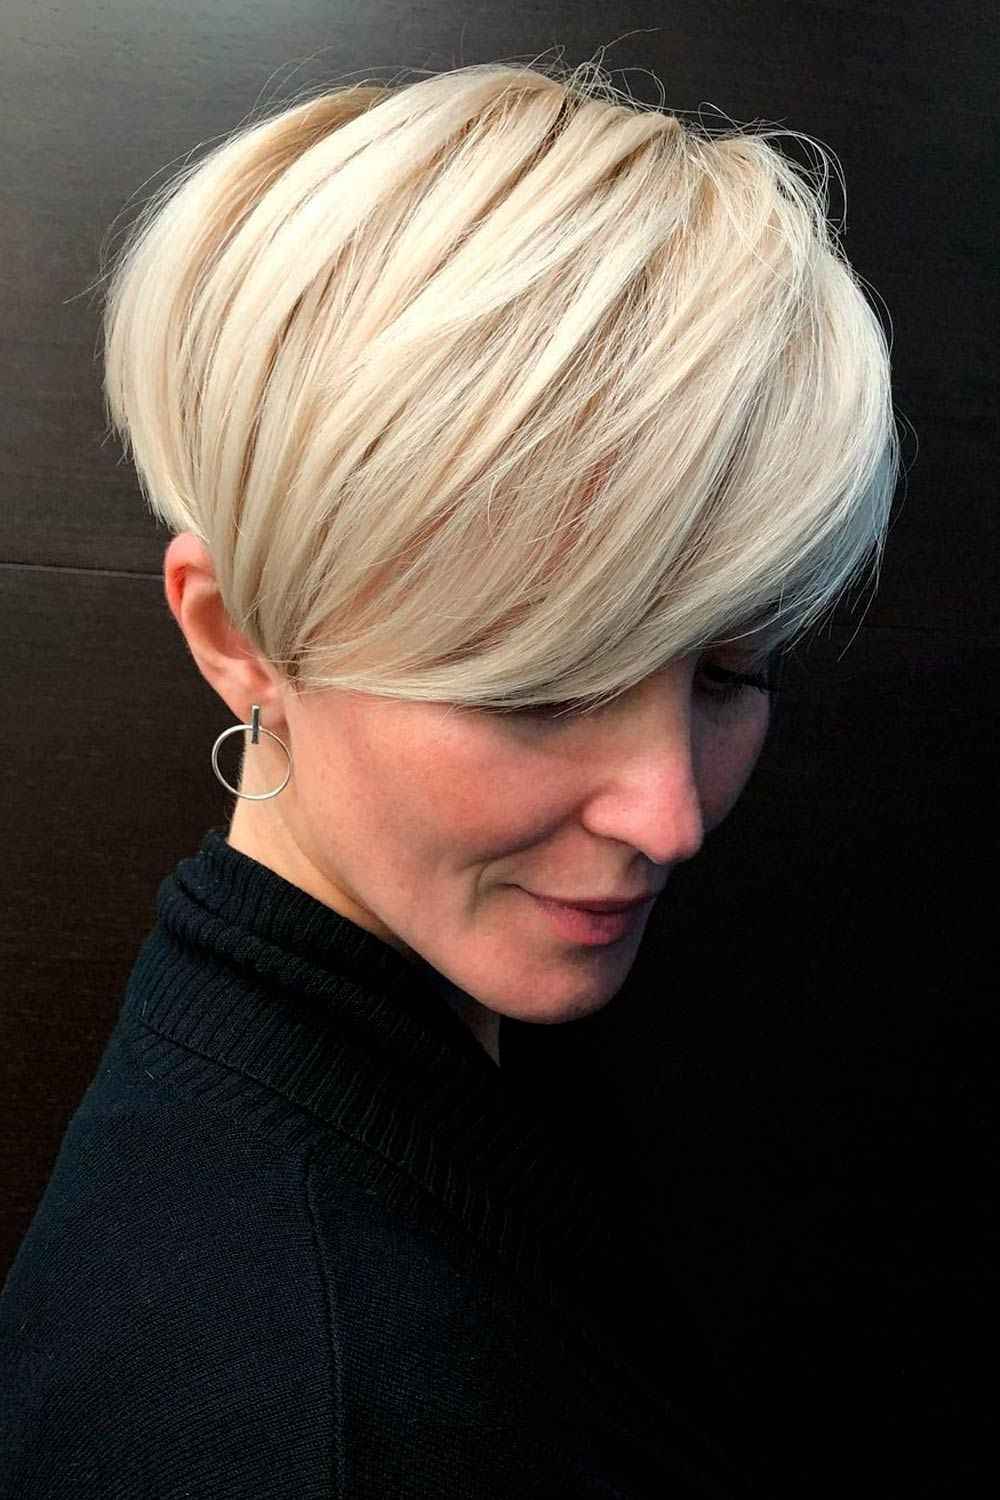 Long Pixie Haircut with Layered Hair